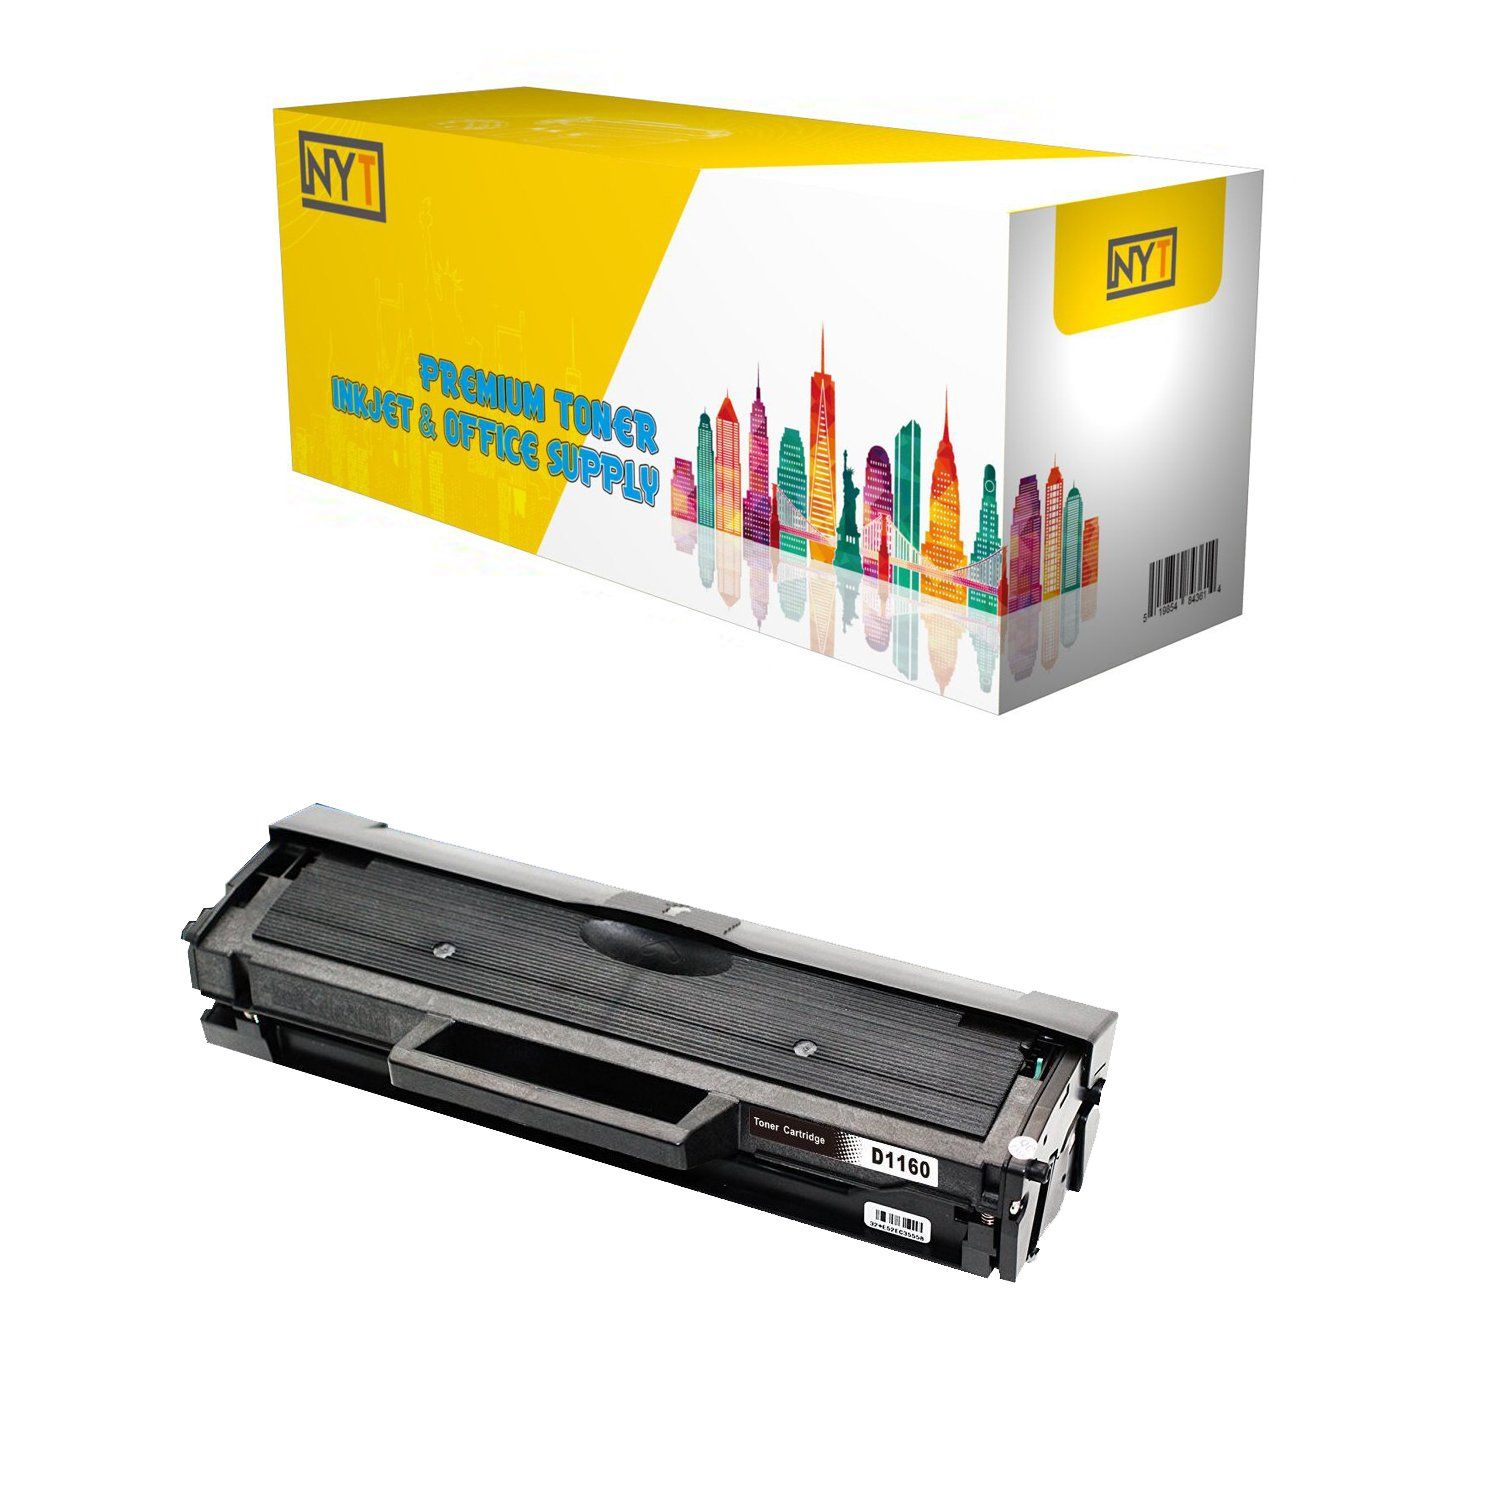 B1165NFW B1163W Black B1160W The House of Toner Compatible Toner Cartridge Replacement for DELL 331-7335 use in B1160